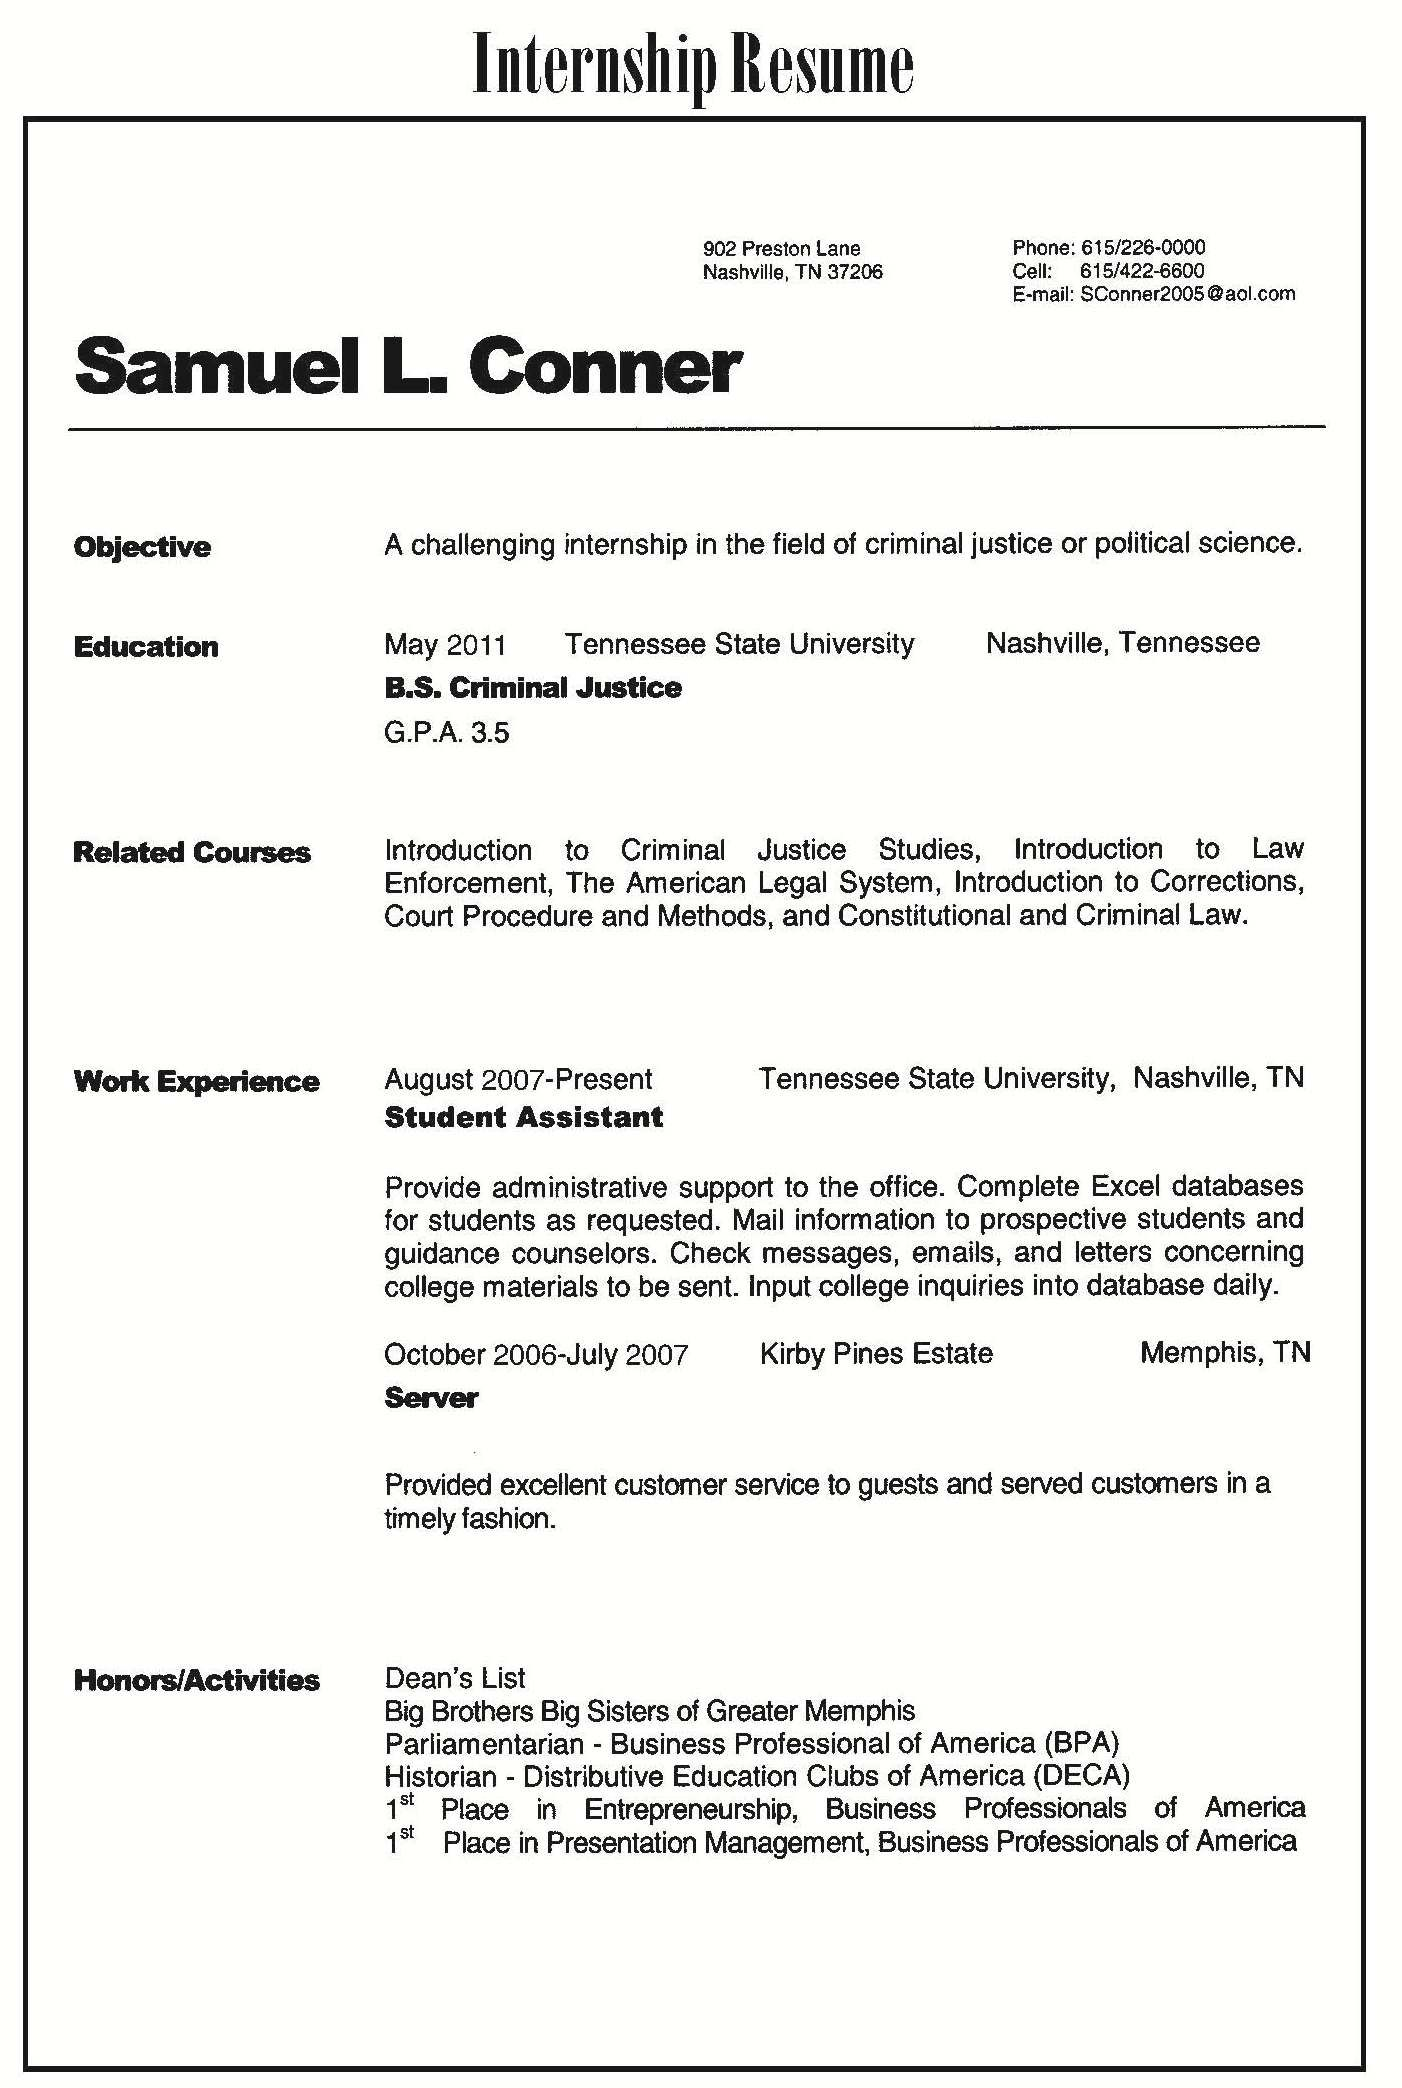 Kinds Of Resume Examples #examples #kinds #resume #resumeexamples ...